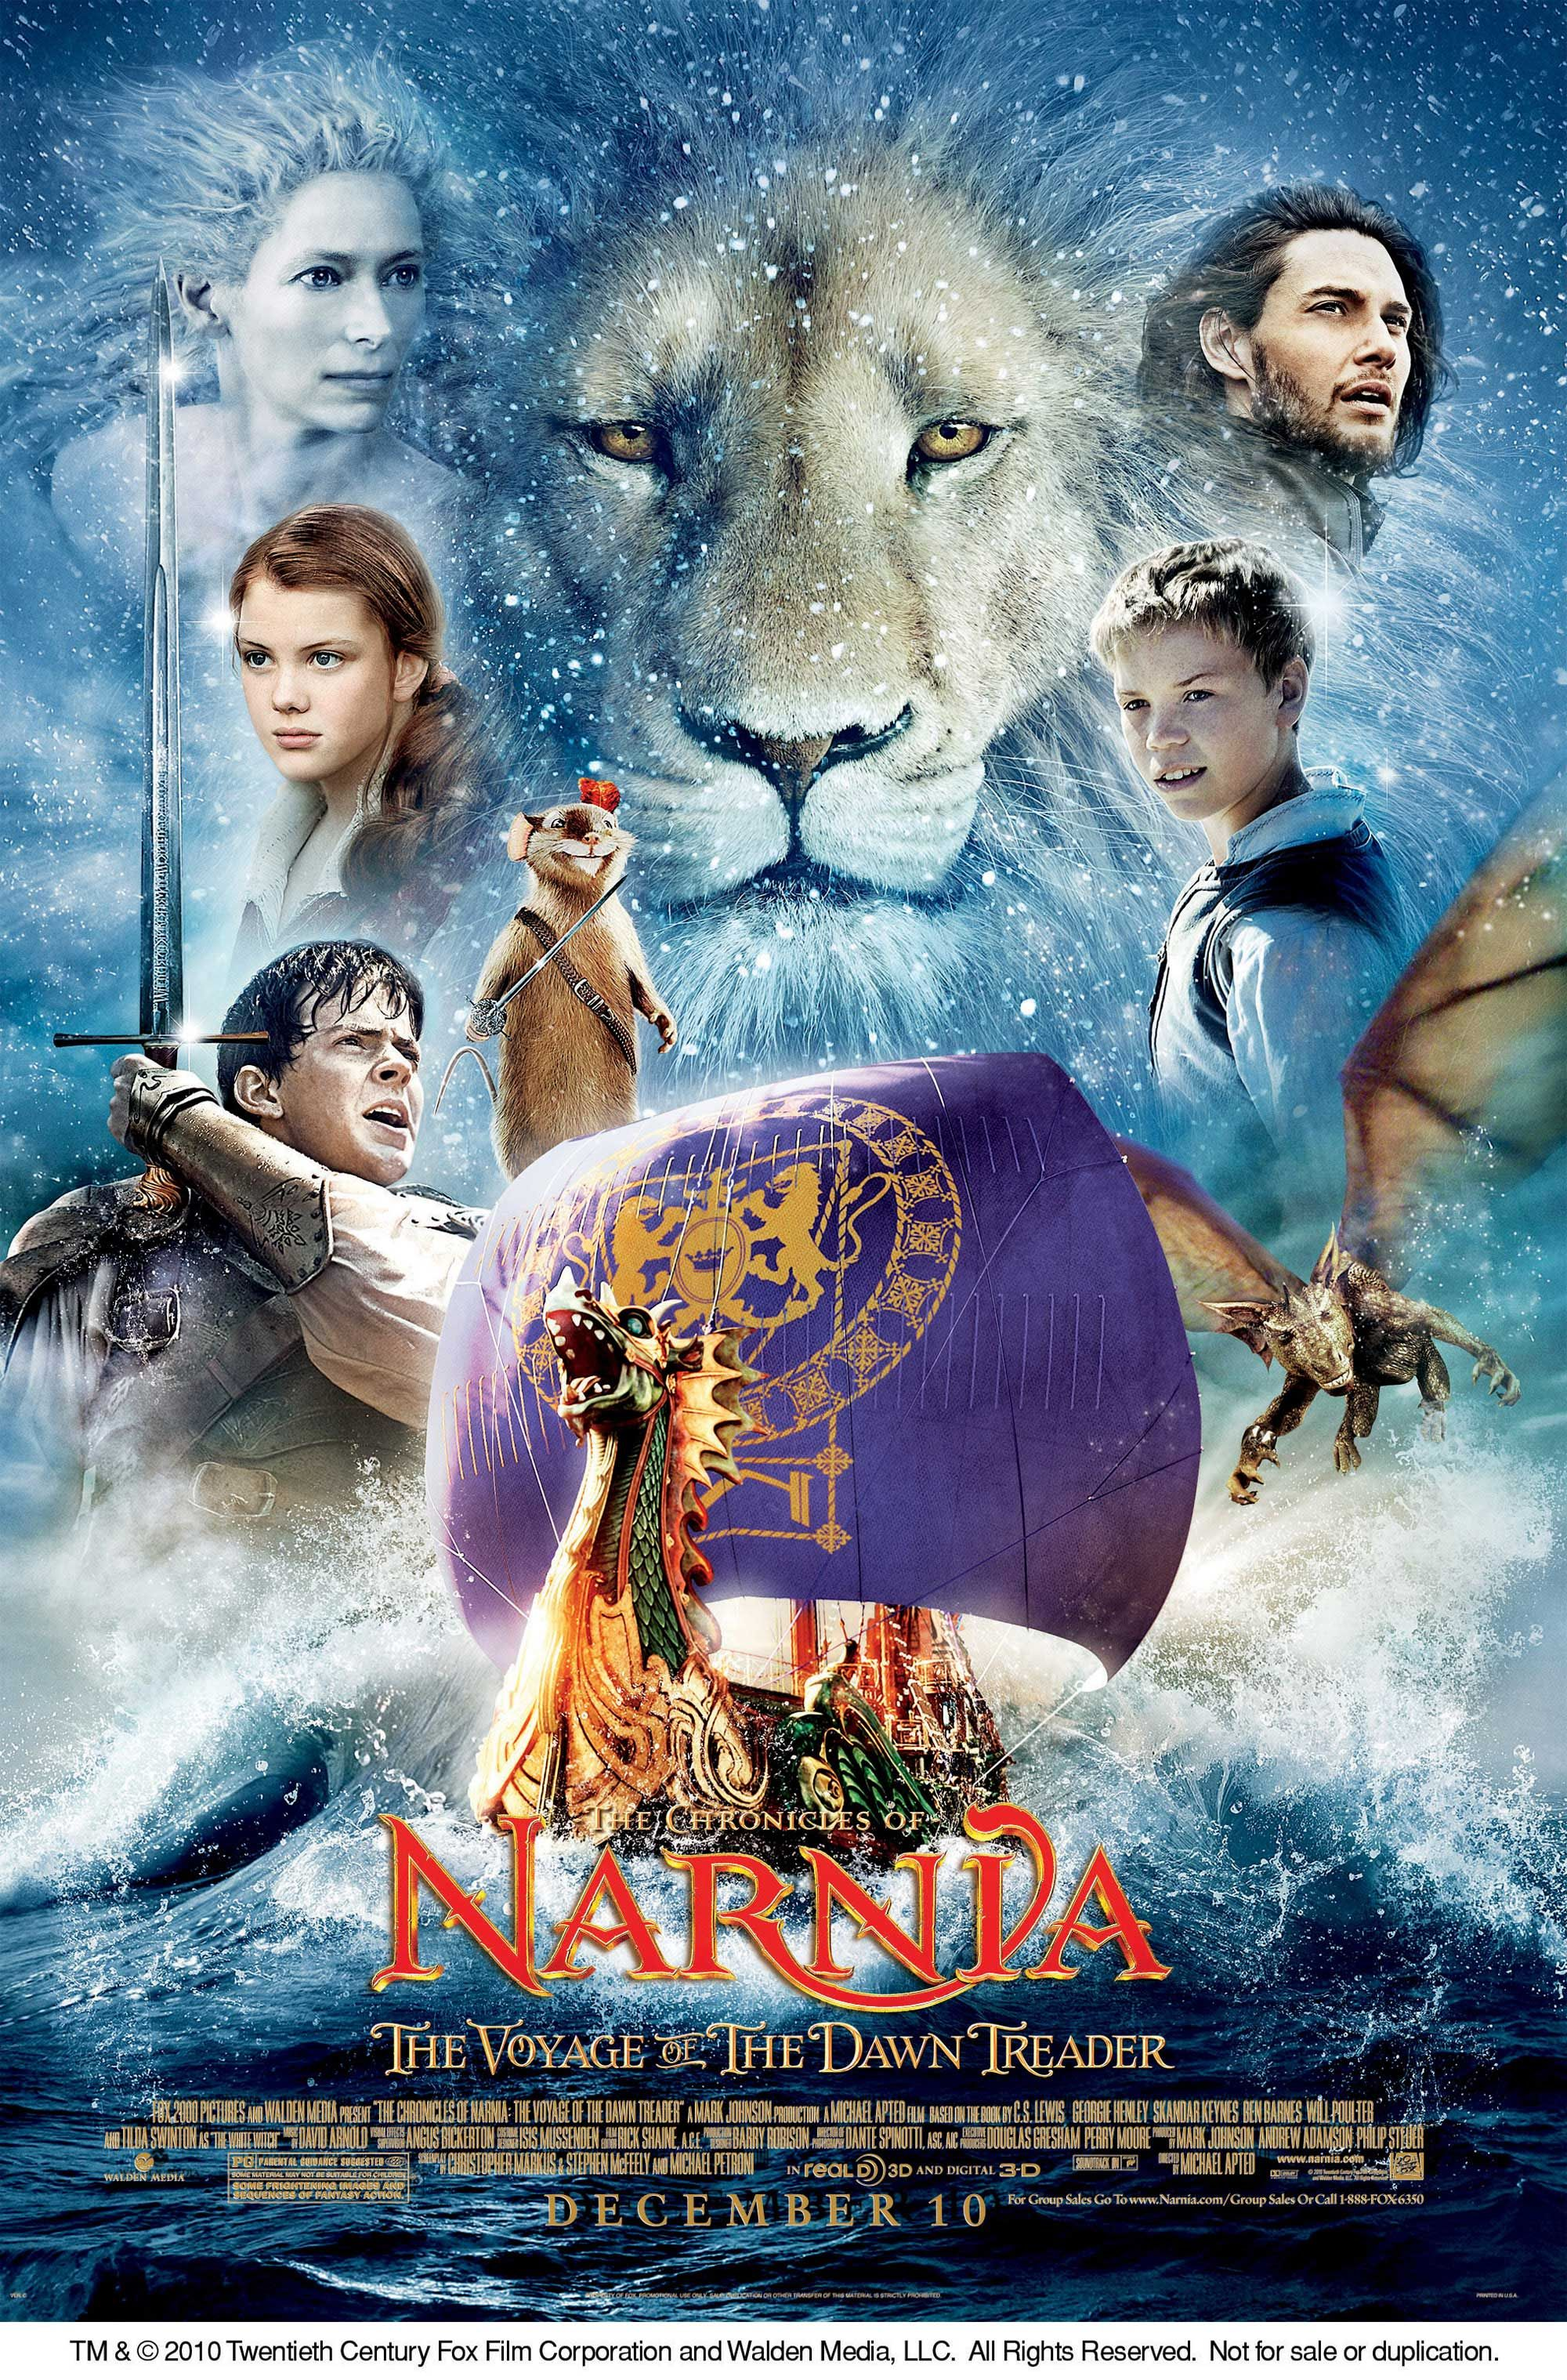 5 10 Average Just Not For Me Cronicas De Narnia As